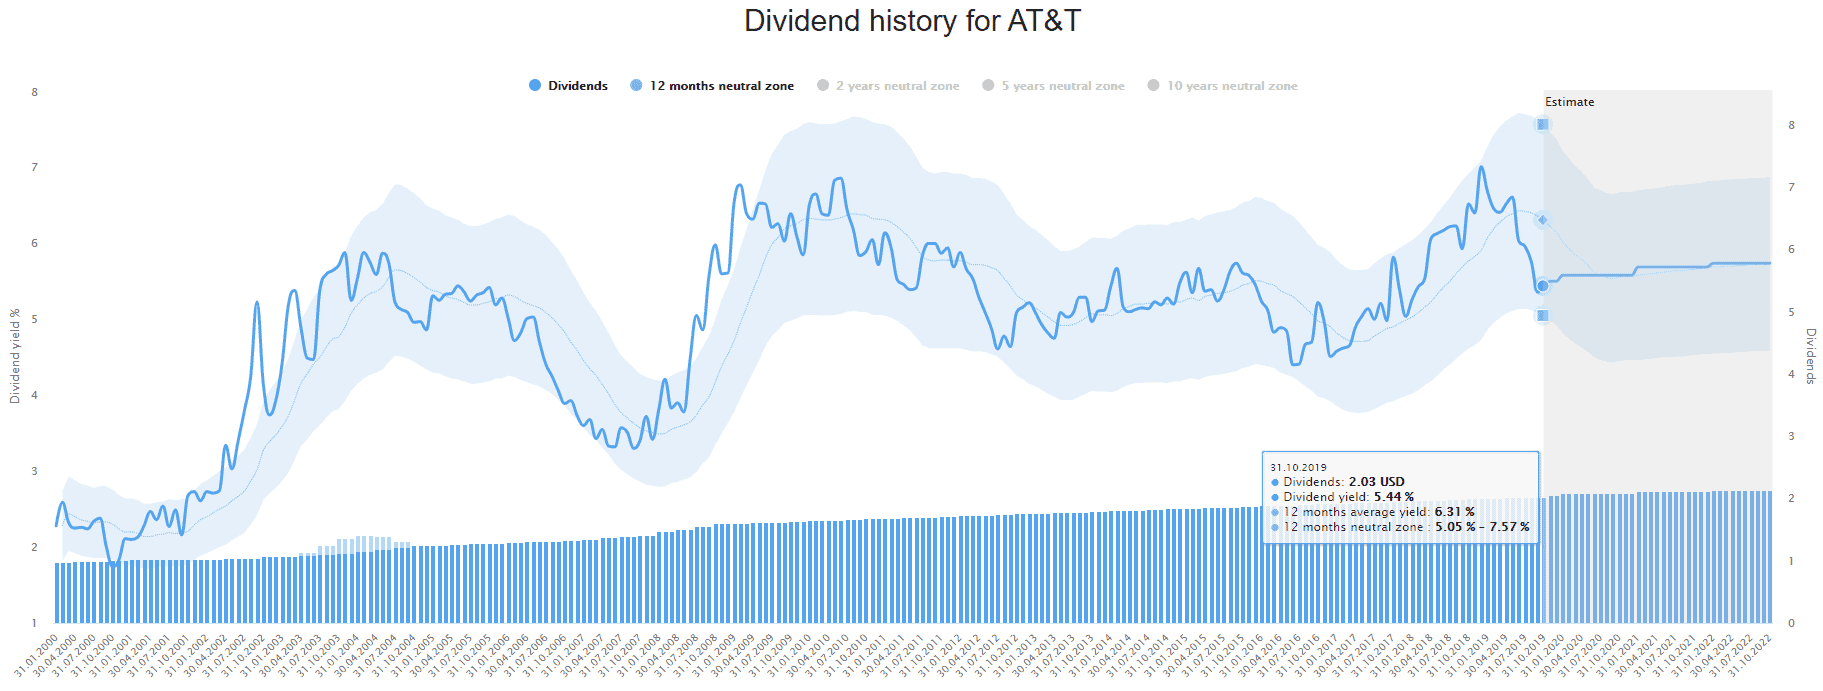 Historic dividend yield of AT&T